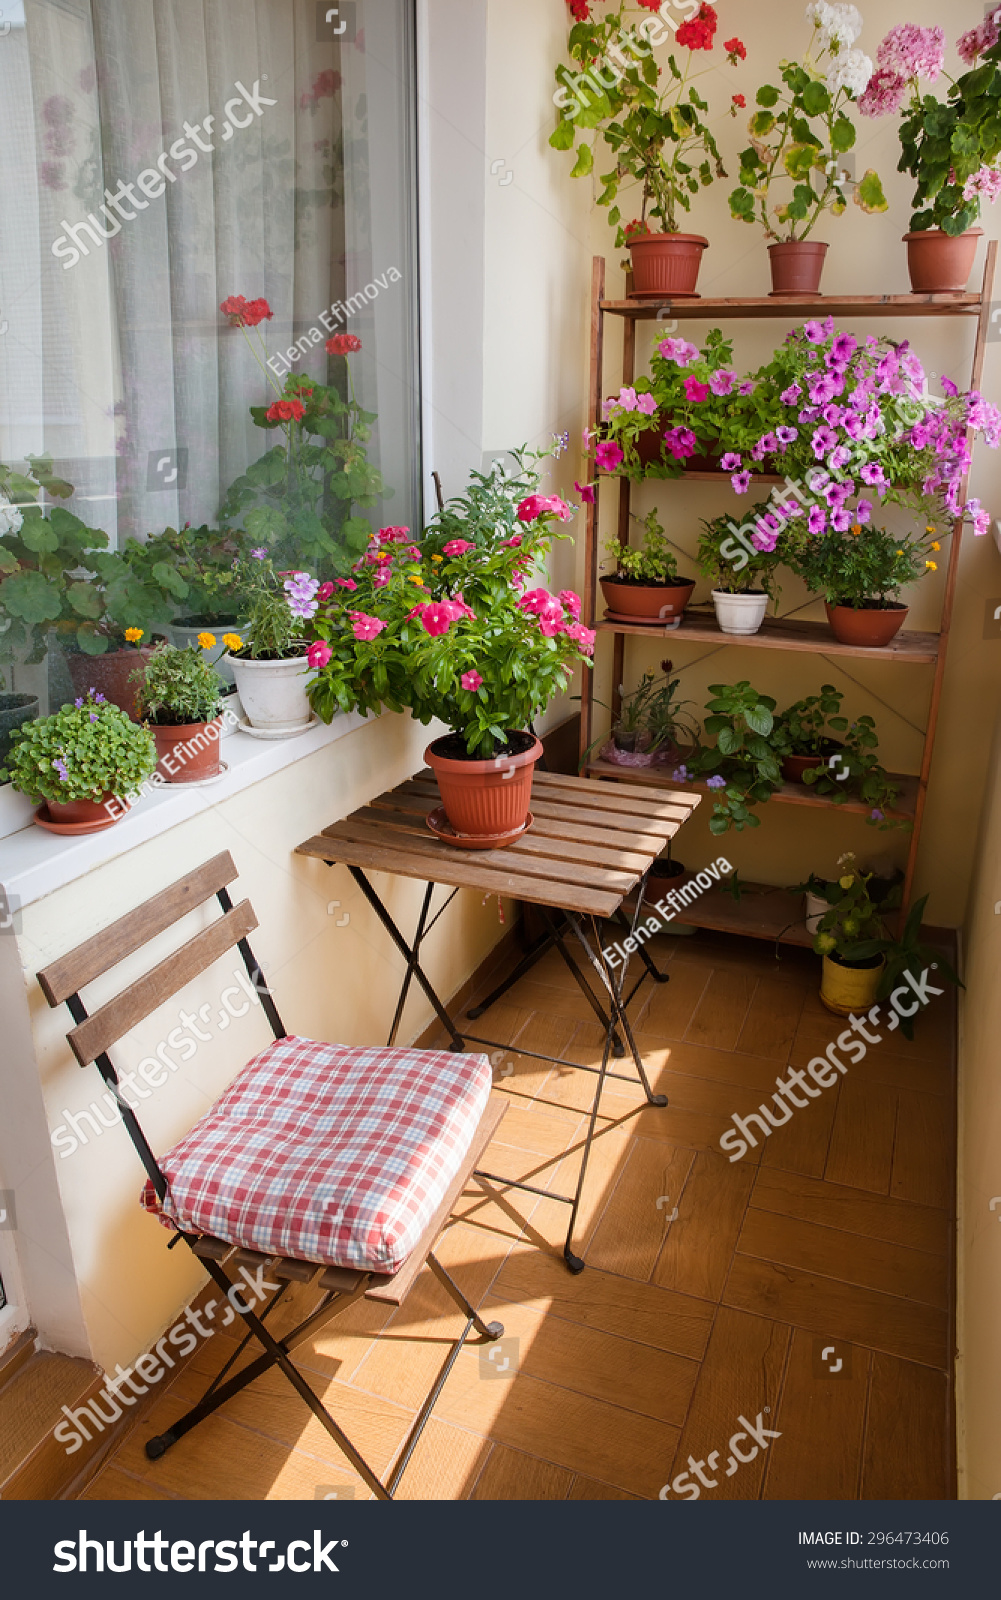 Beautiful balcony small table chair flowers stock photo for Small balcony table and chairs